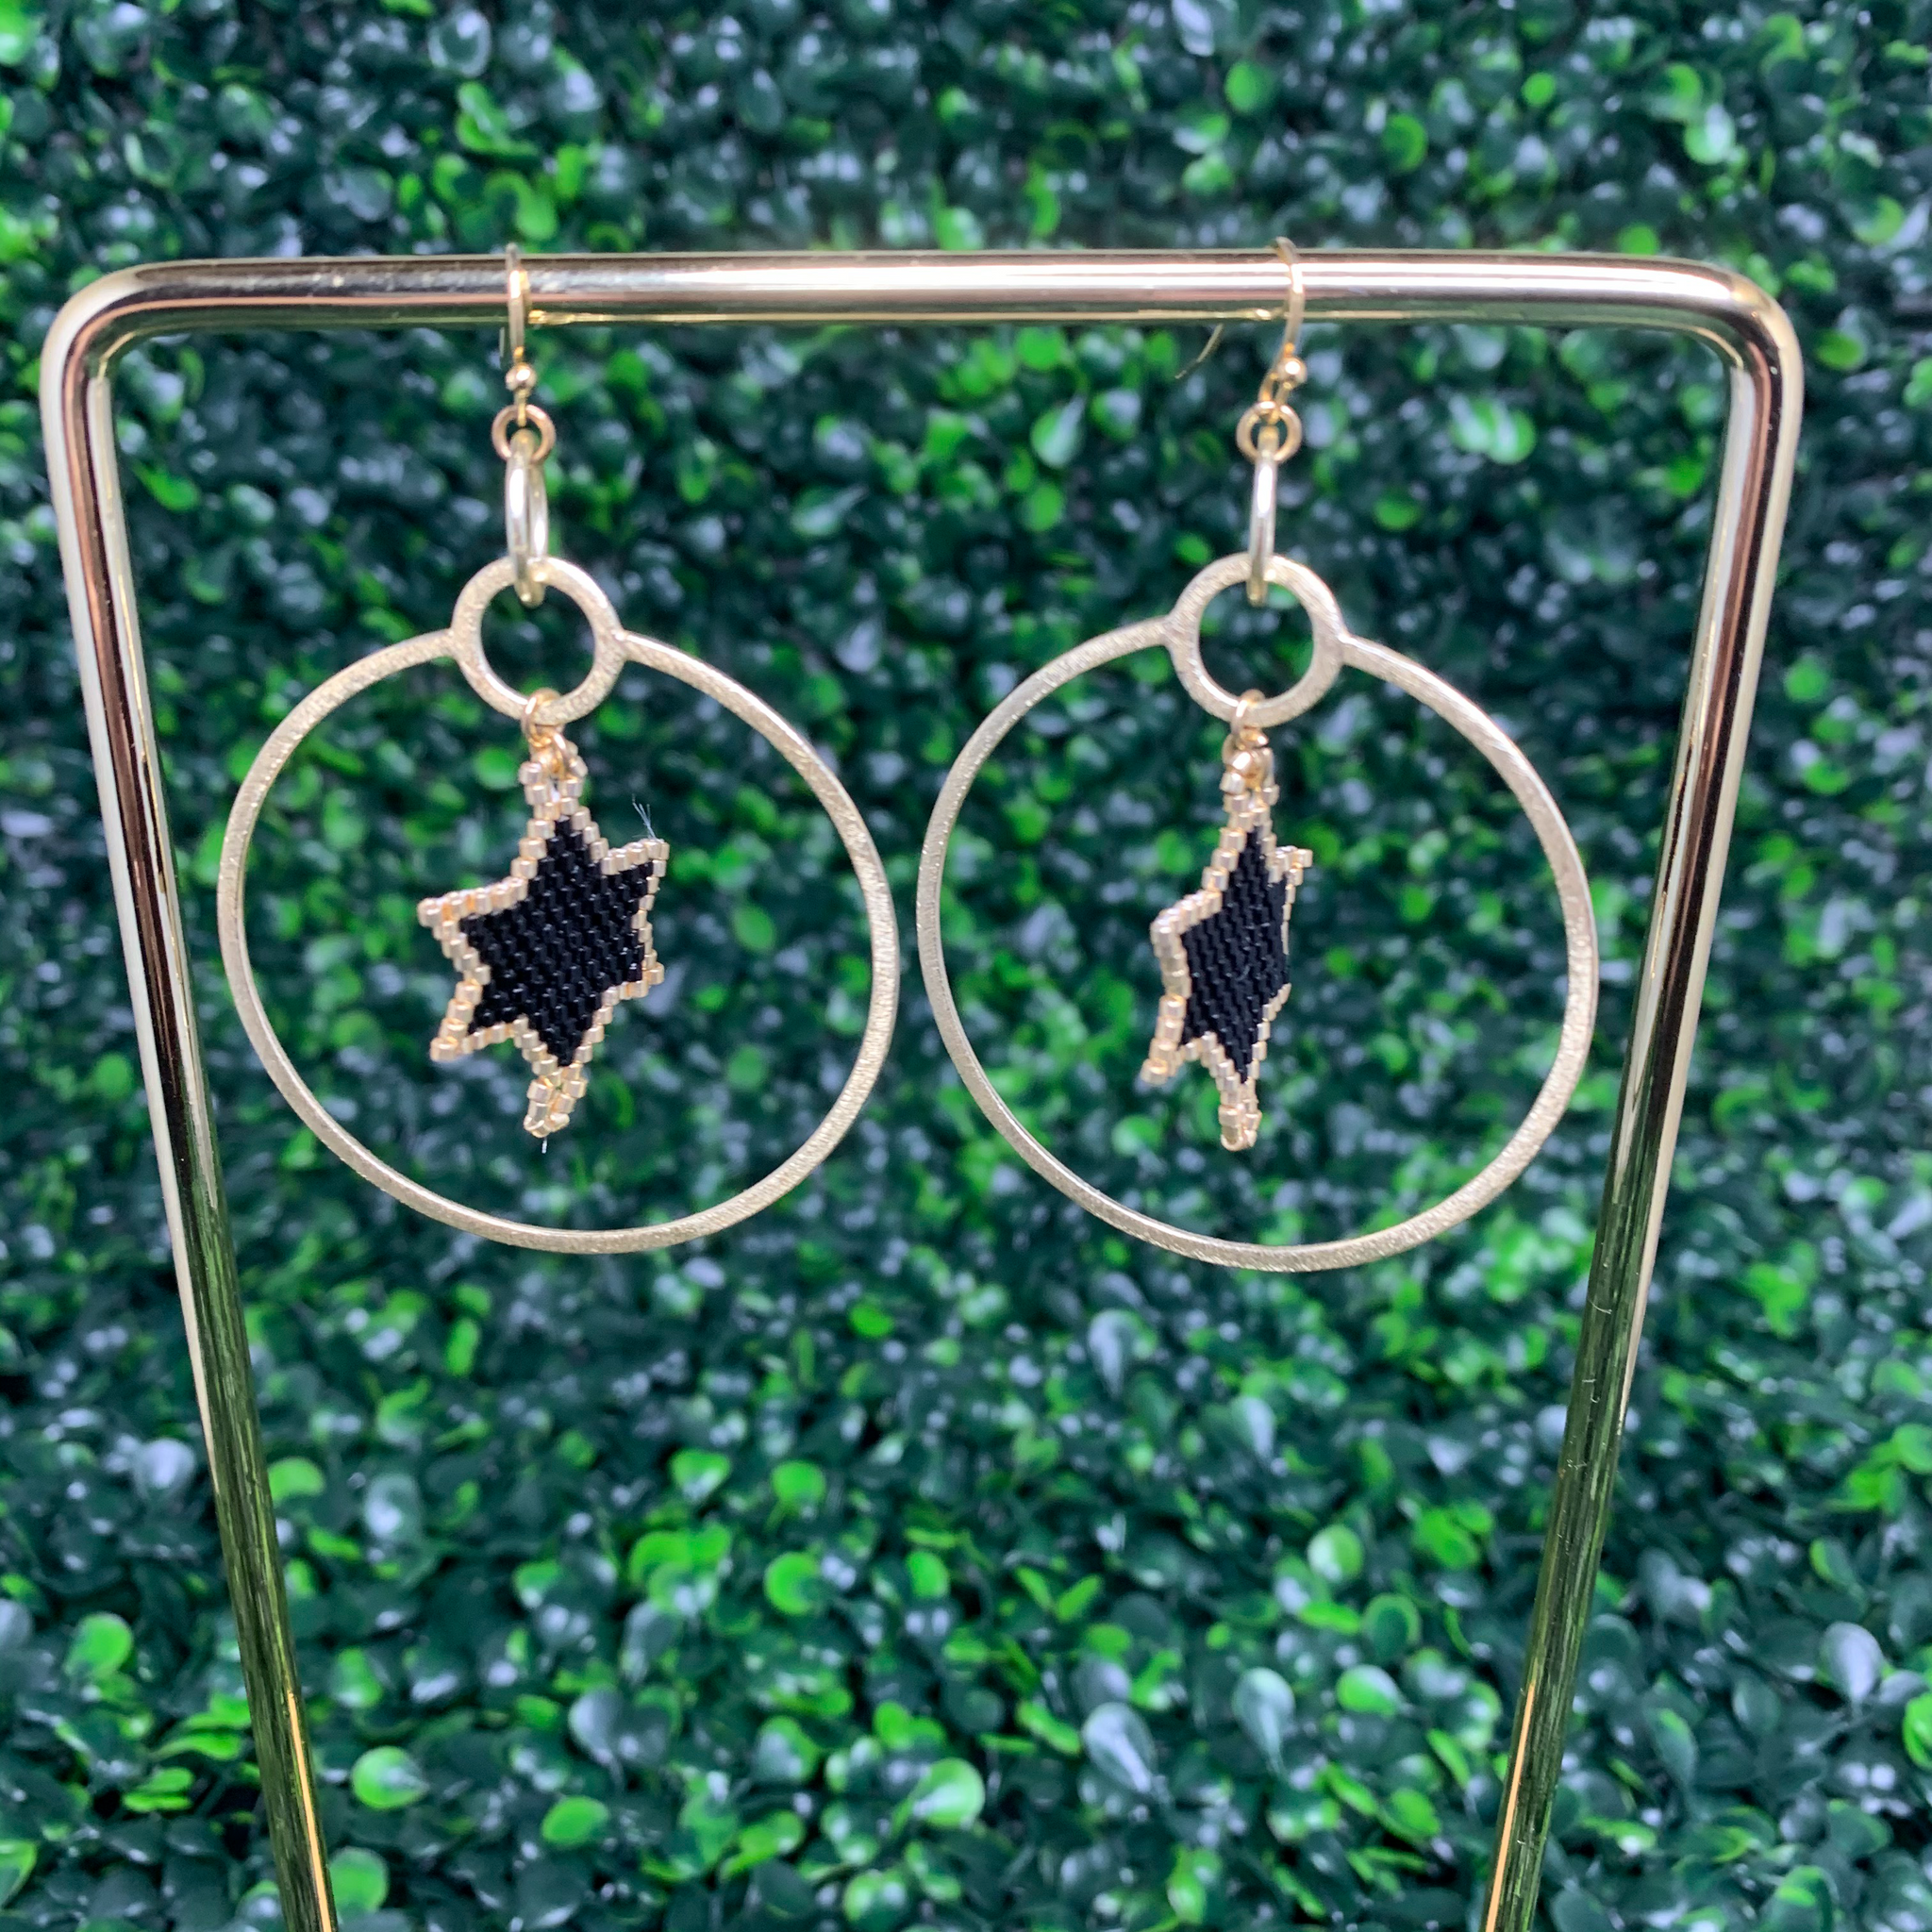 Stella Nera Earrings